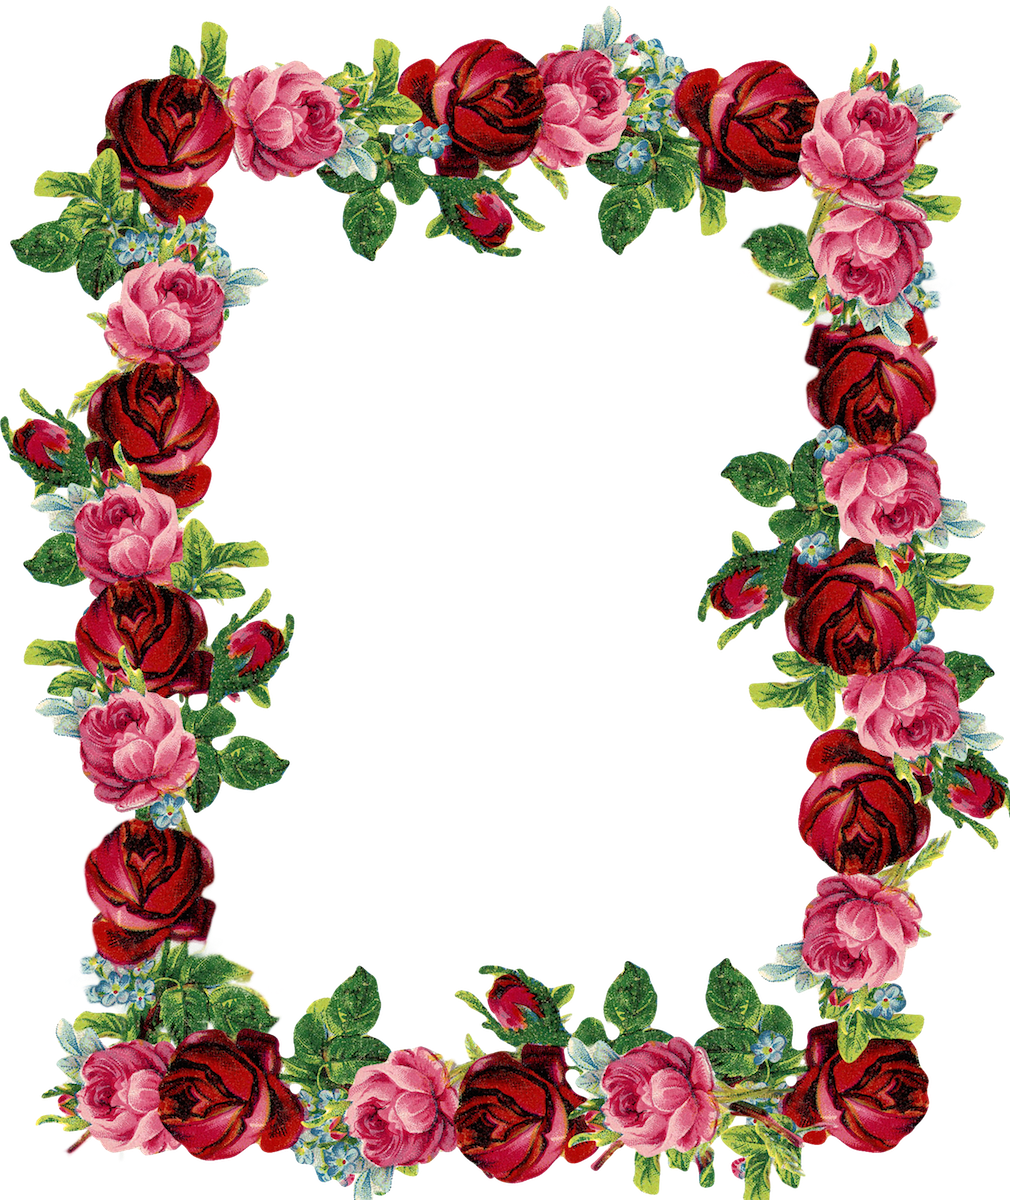 frames borders flora floral flowers clipart roses pink red